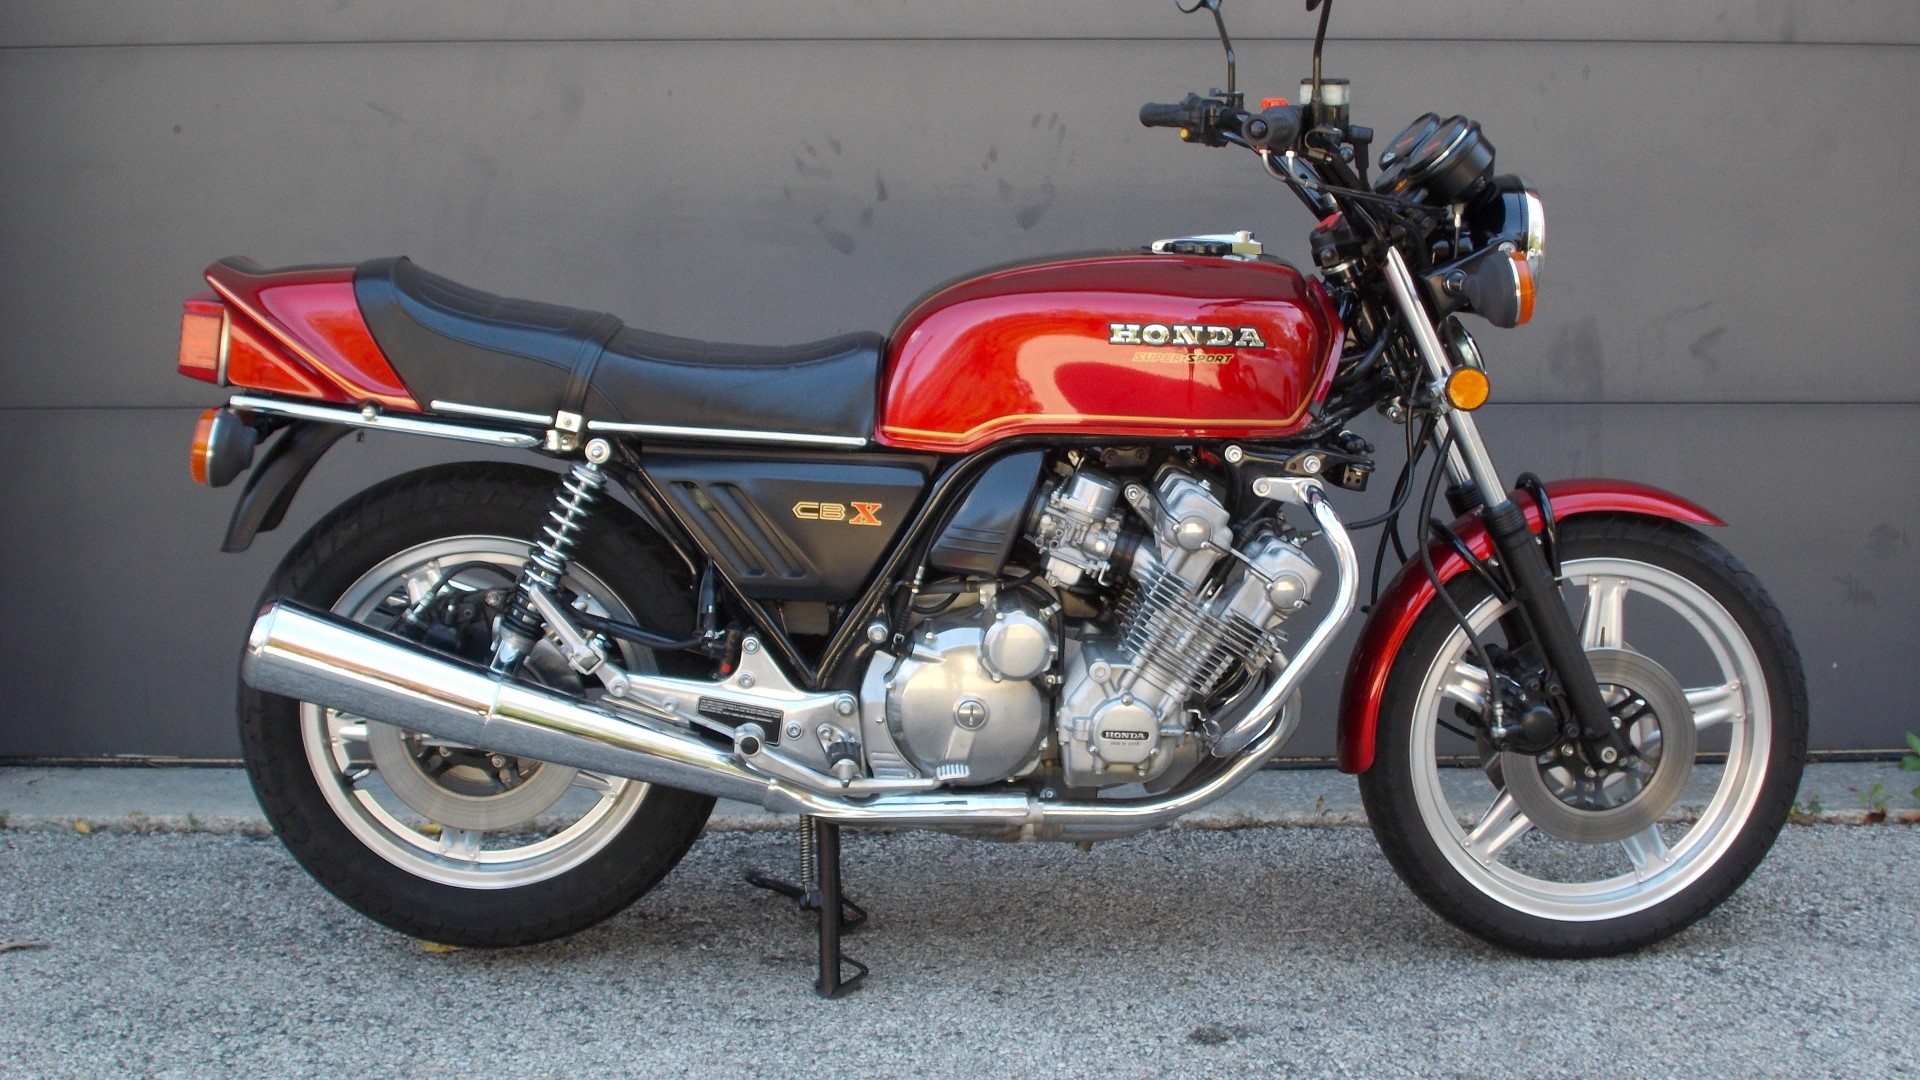 hight resolution of in 1978 honda stunned the motorcycling world with a technological tour de force the six cylinder 24 valve cbx was the most ambitious and the most